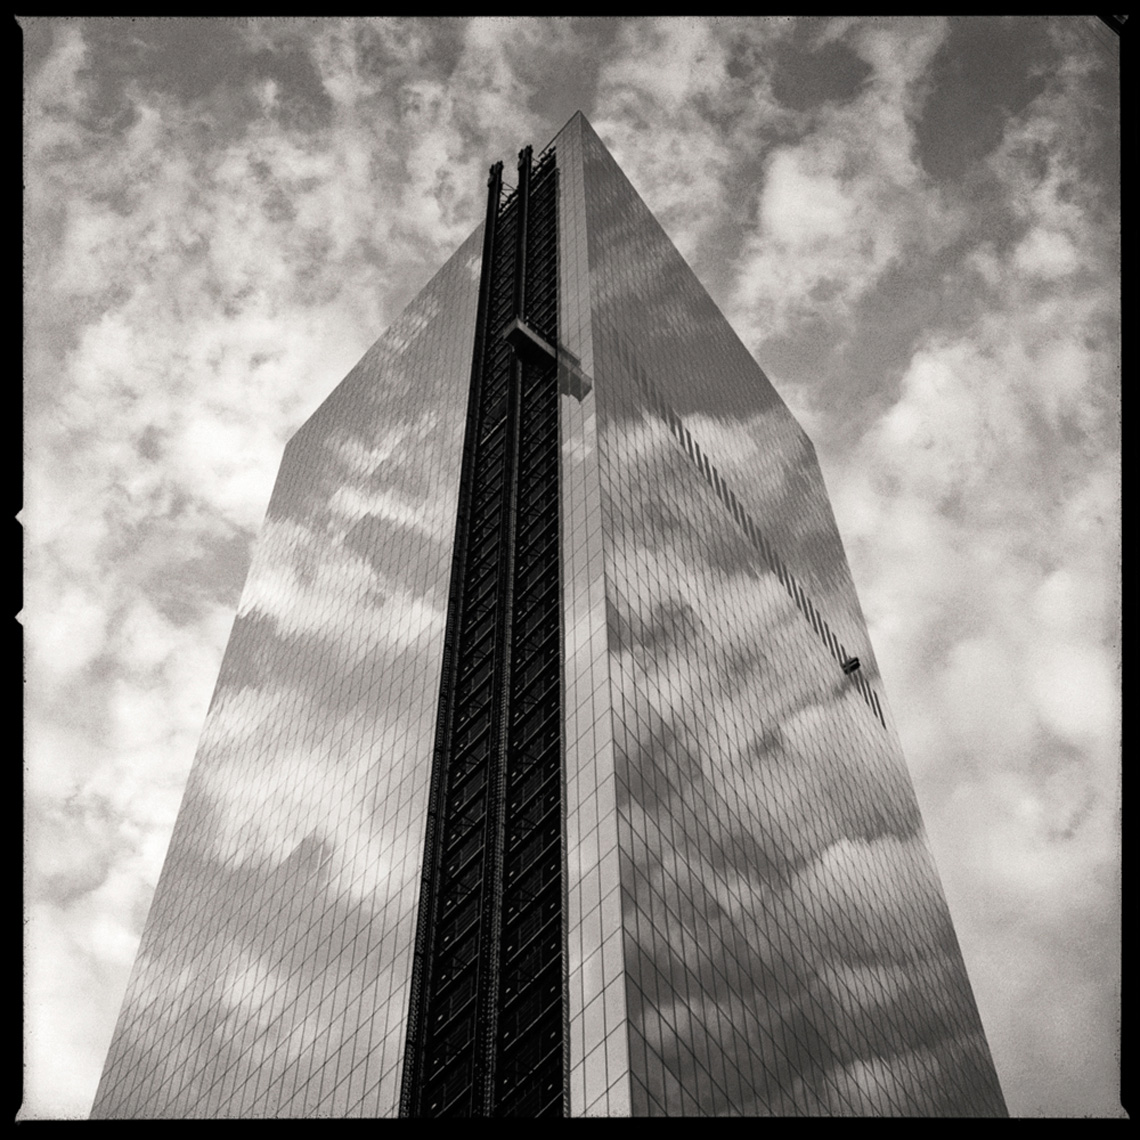 Sean Perry Photographs • 4 World Trade Center, from the series Monolith